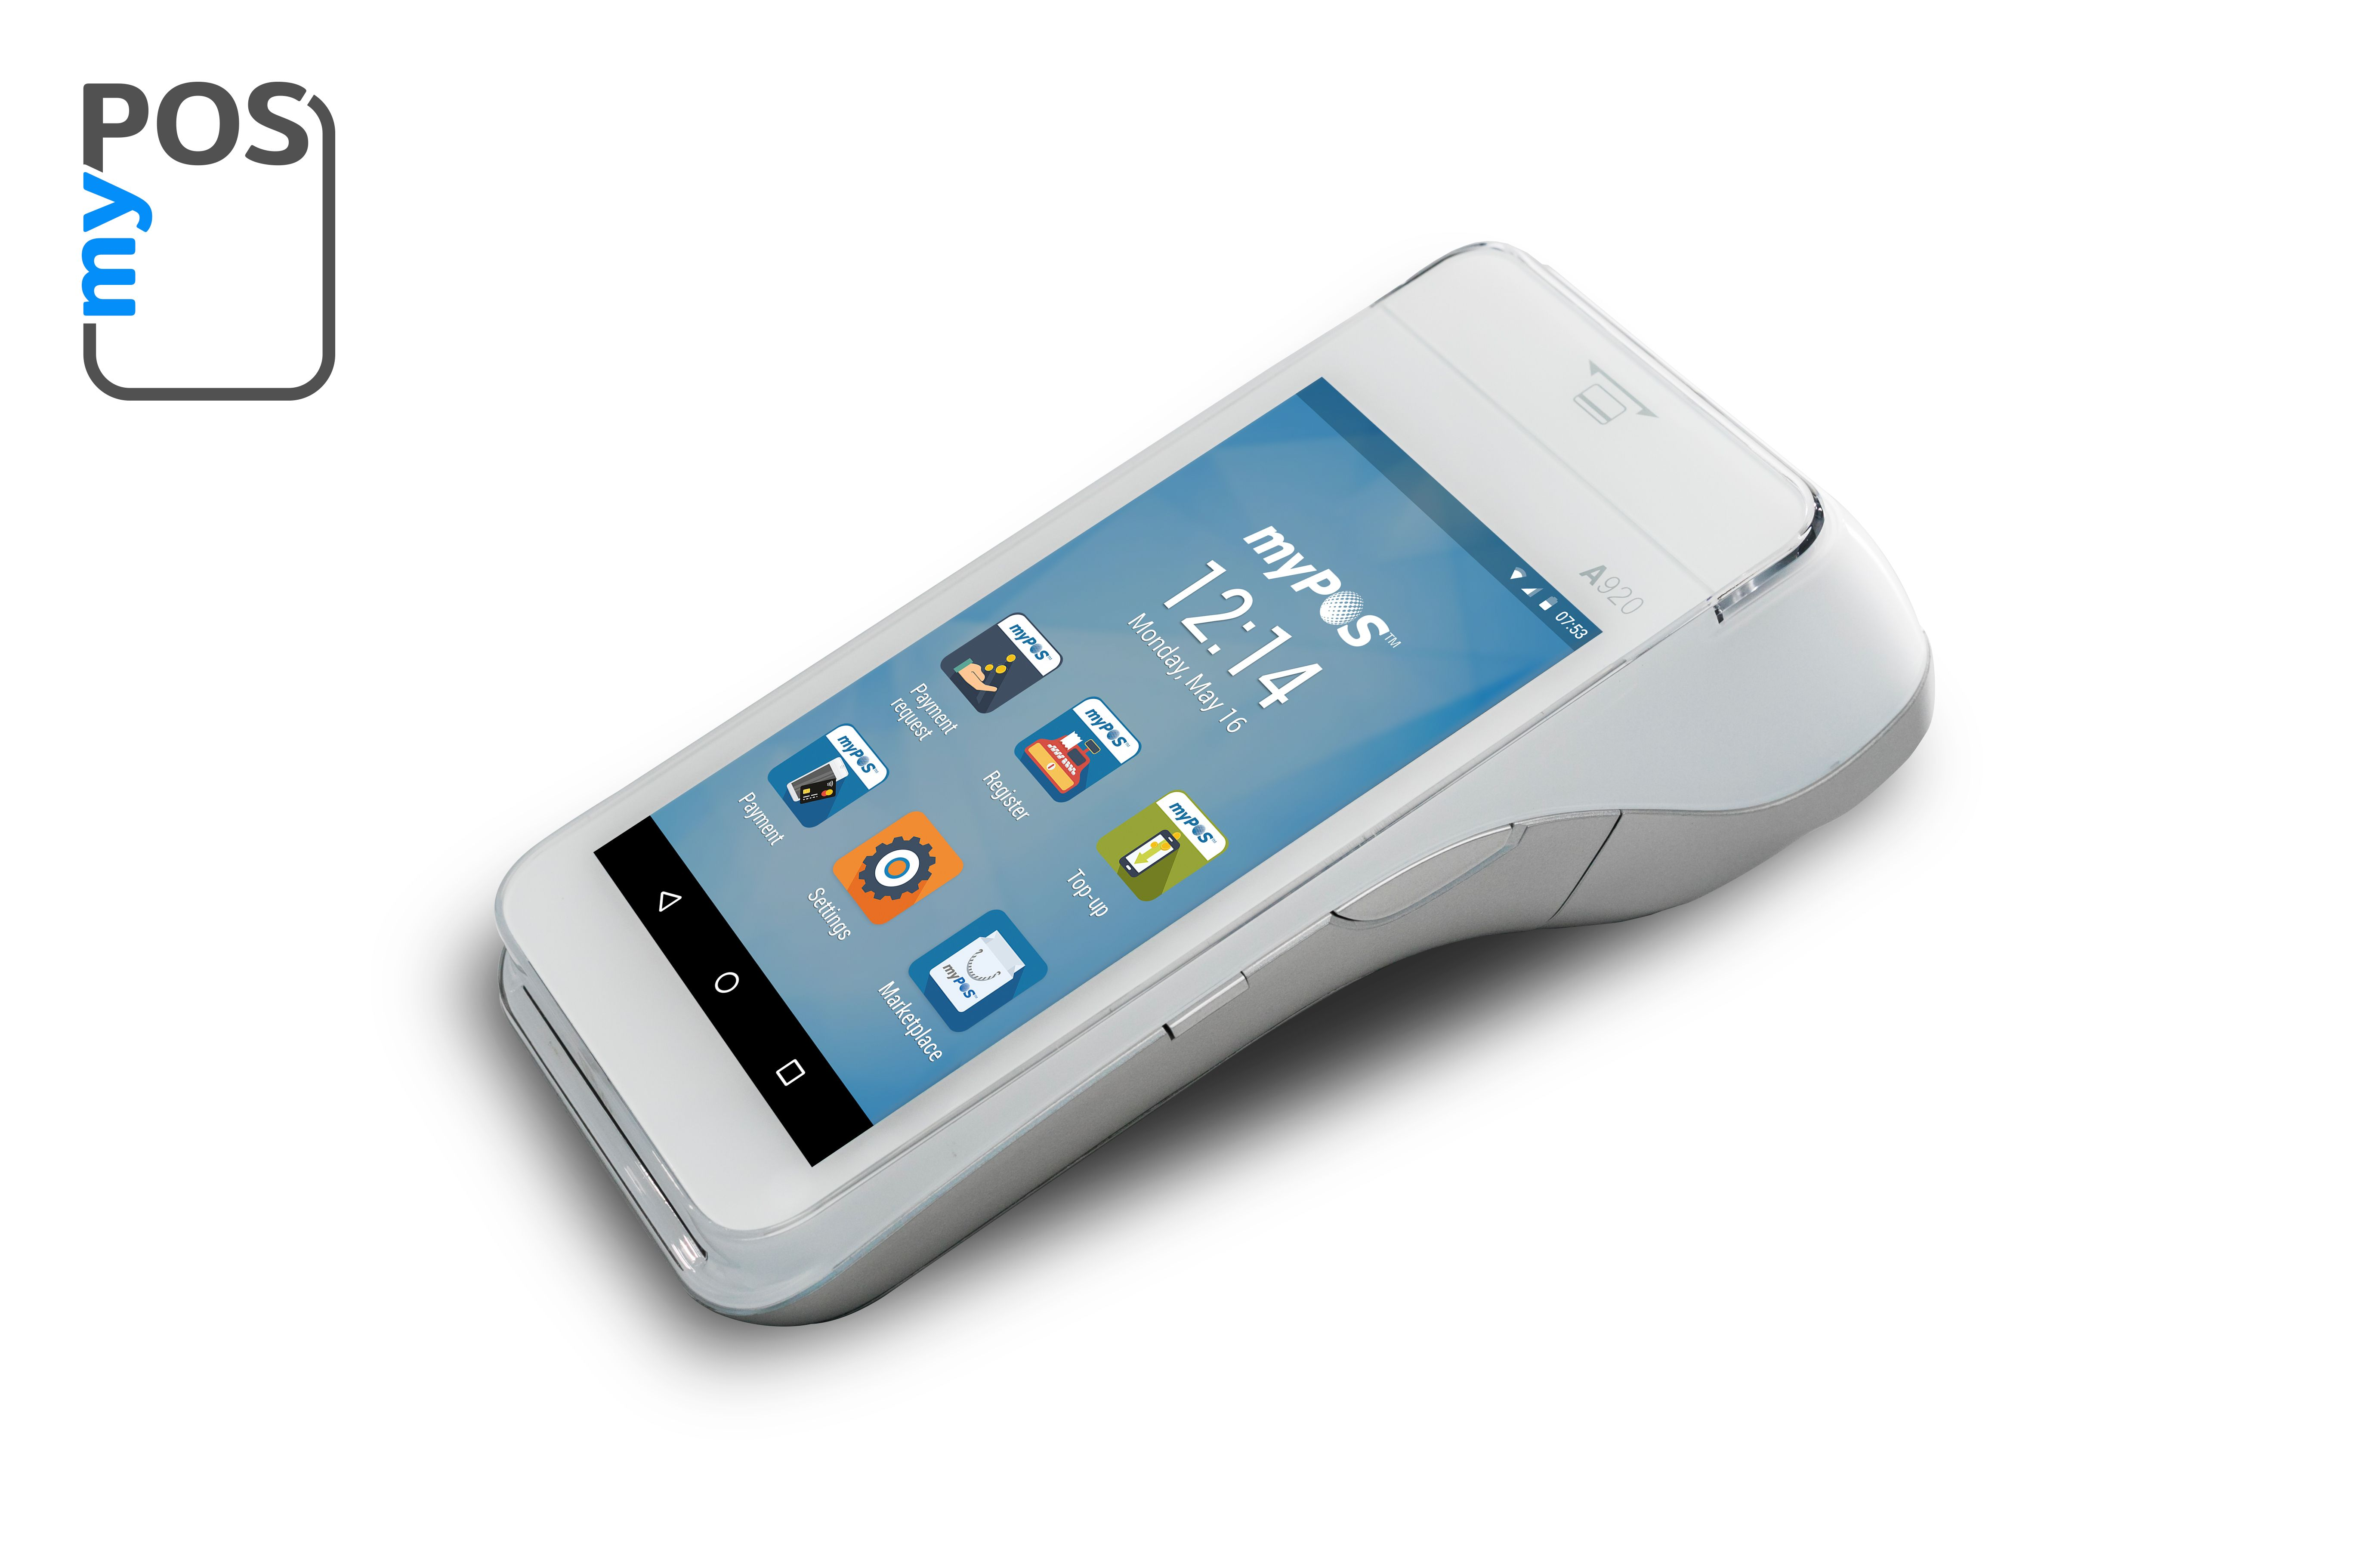 Android Based Point Of Sale Machine With A Cash Register Mypos Smart Credit Card Terminal Smart Smart Buy